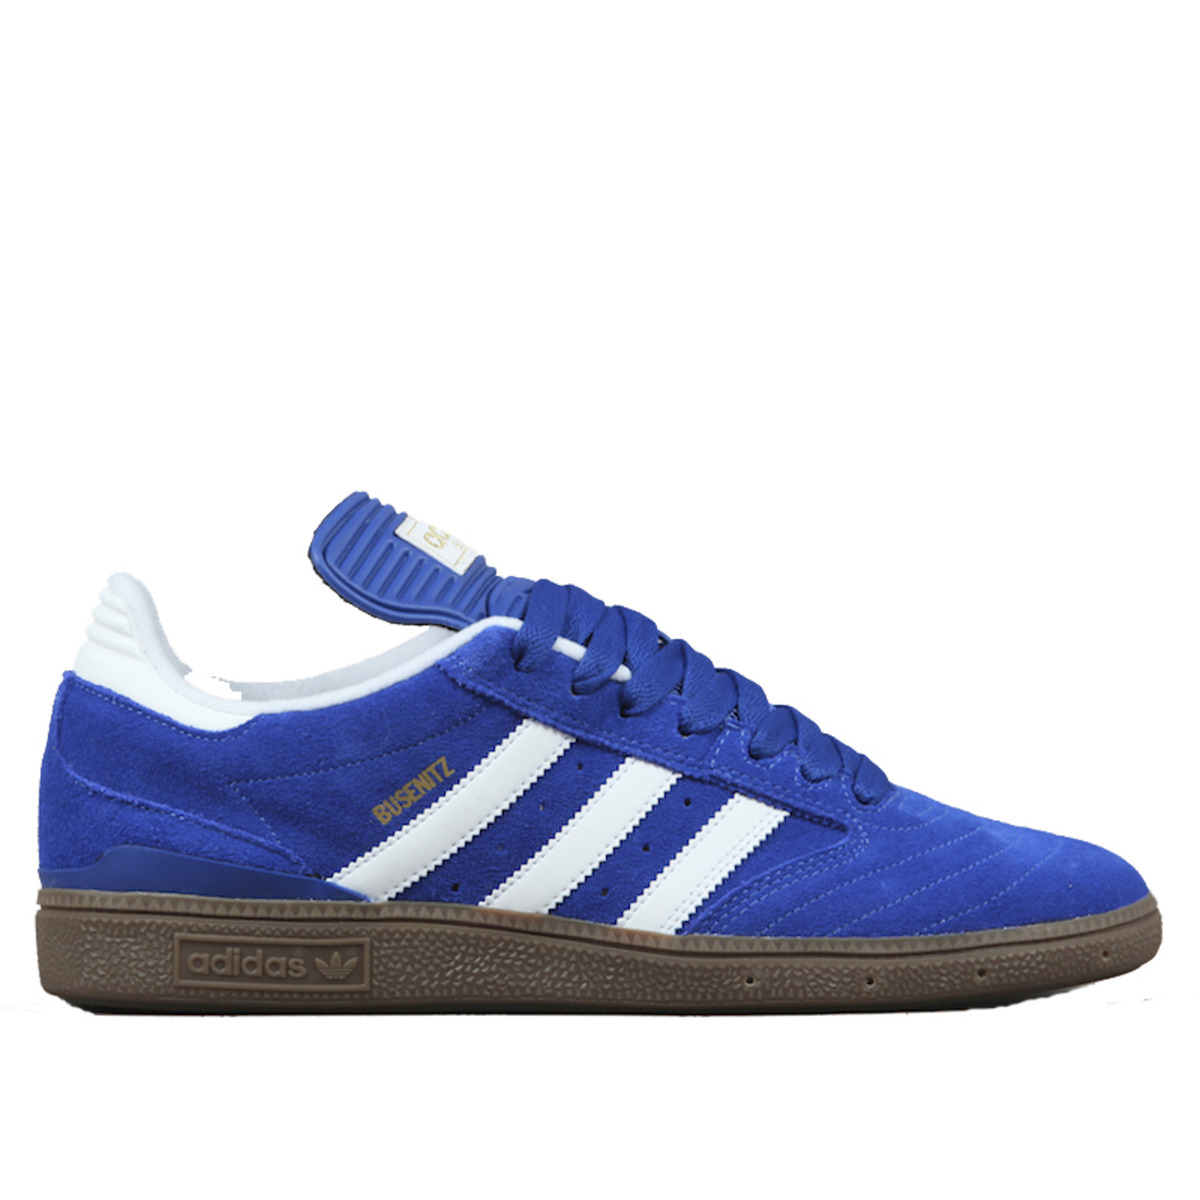 adidas busenitz yellow